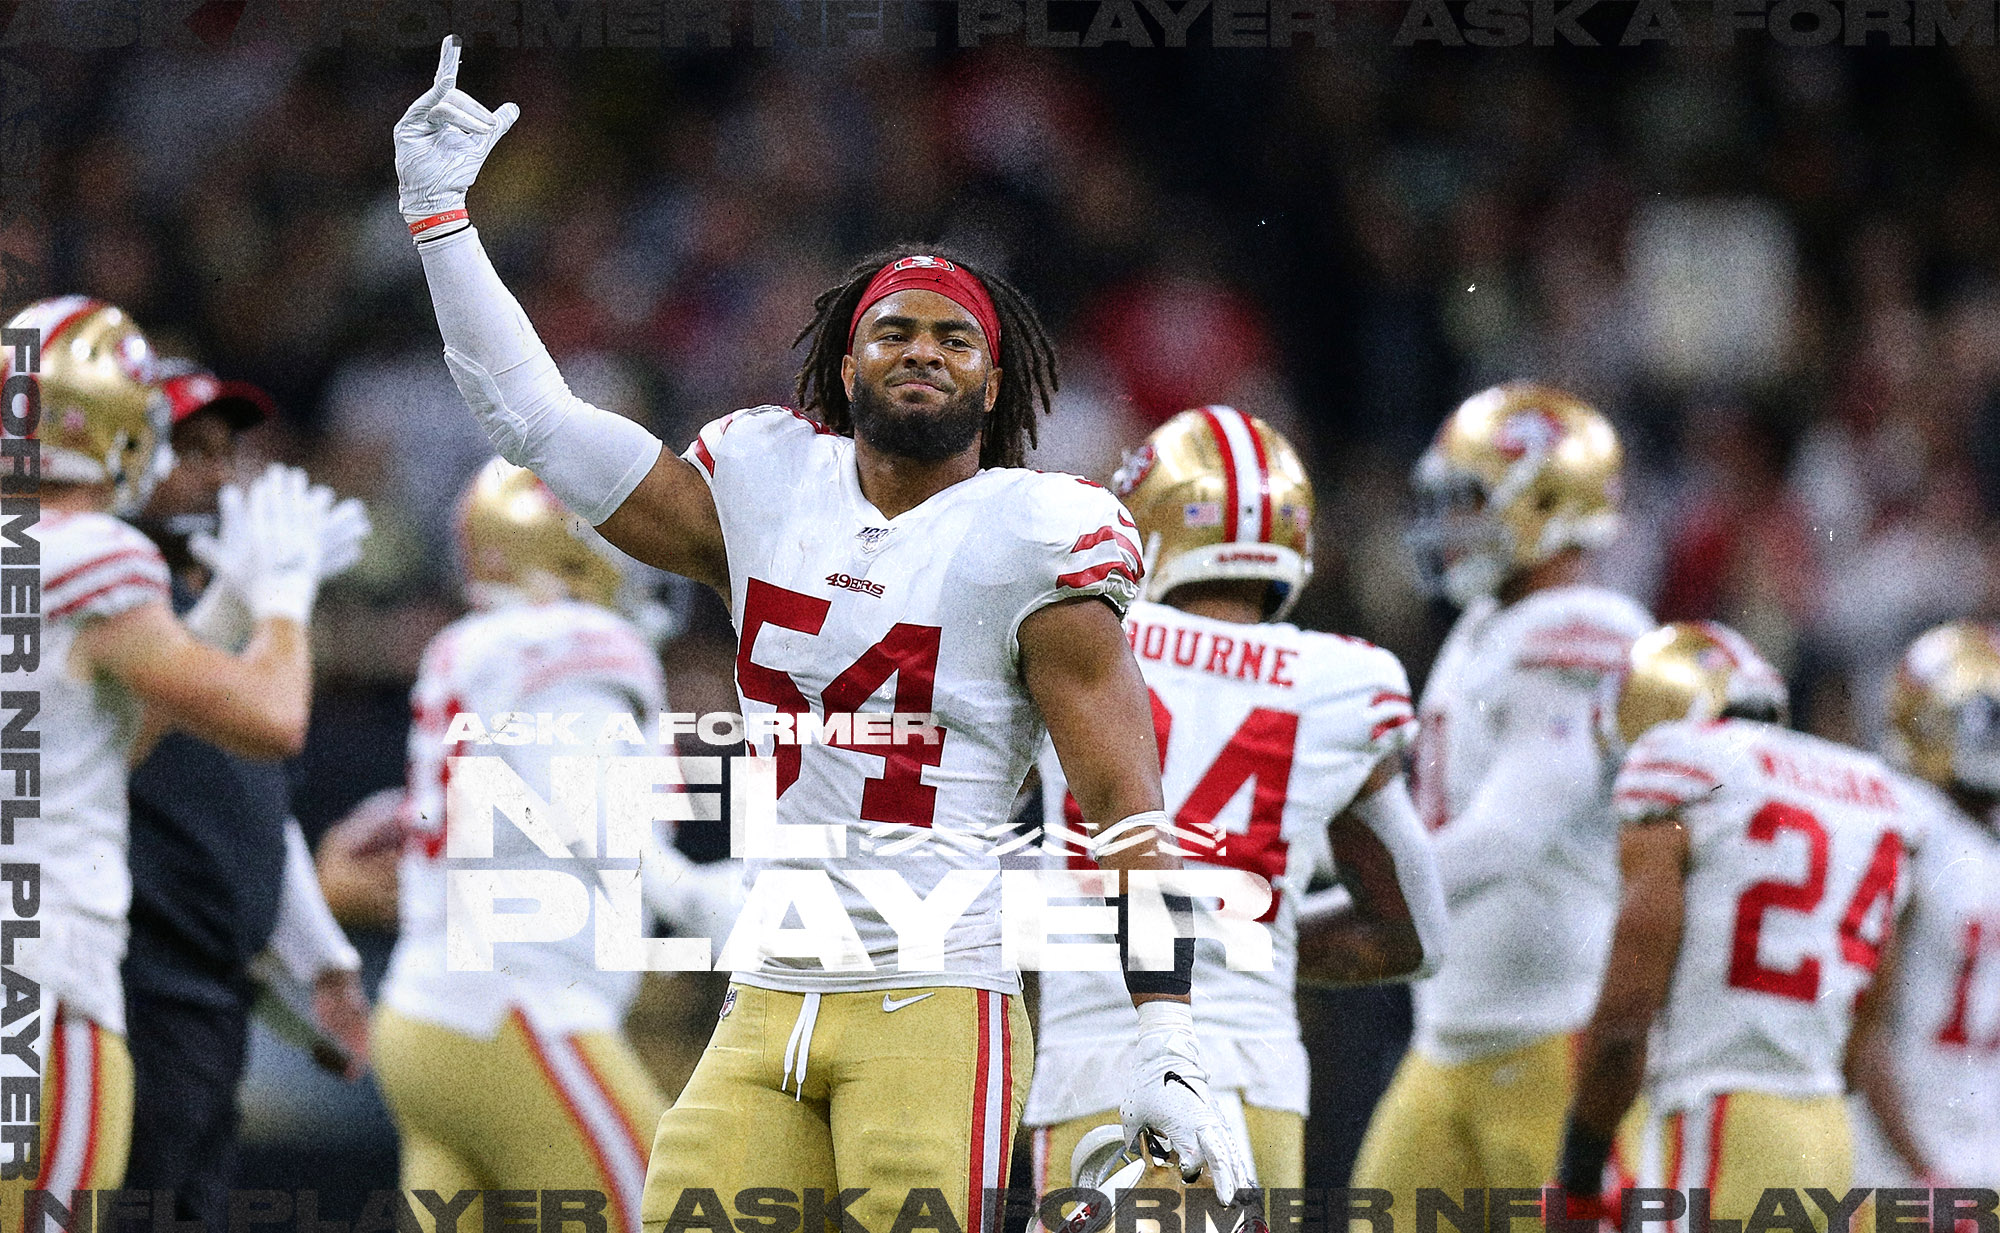 49ers LB Fred Warner holds his right arm up while looking at the crowd, with his teammates huddled behind him